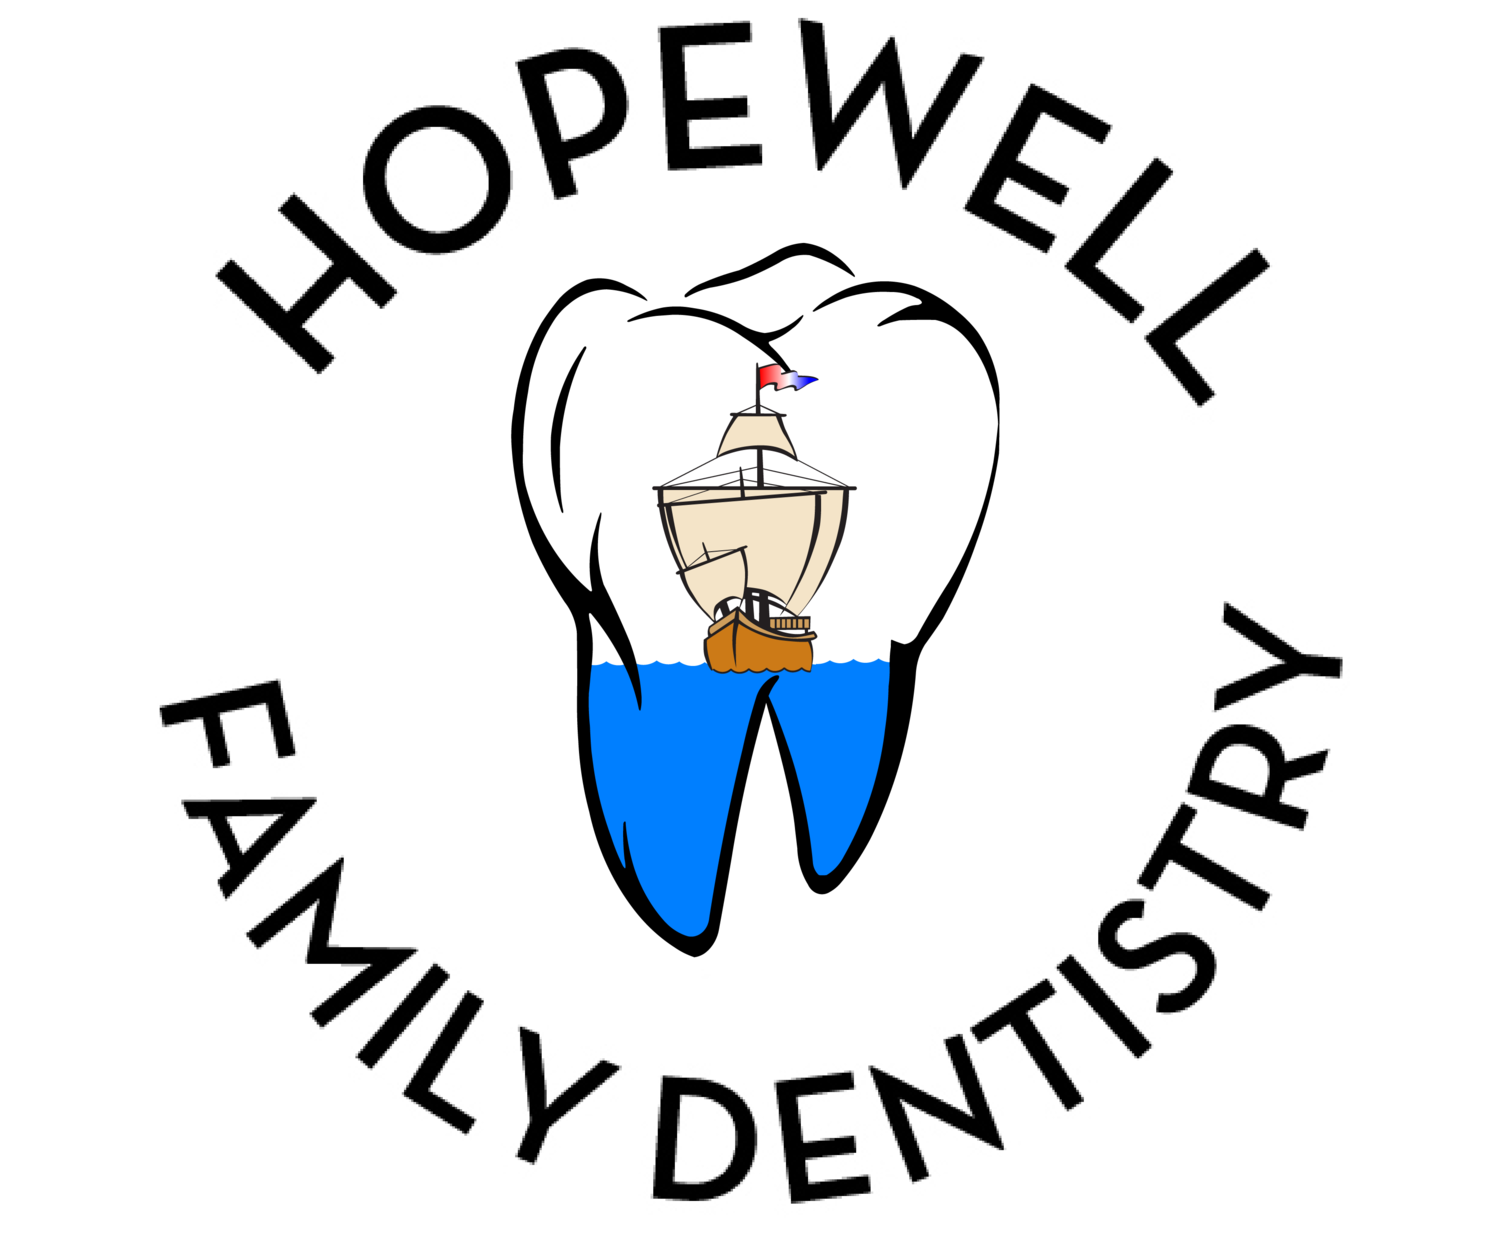 Dentist Hopewell, VA | Hopewell Family Dentistry